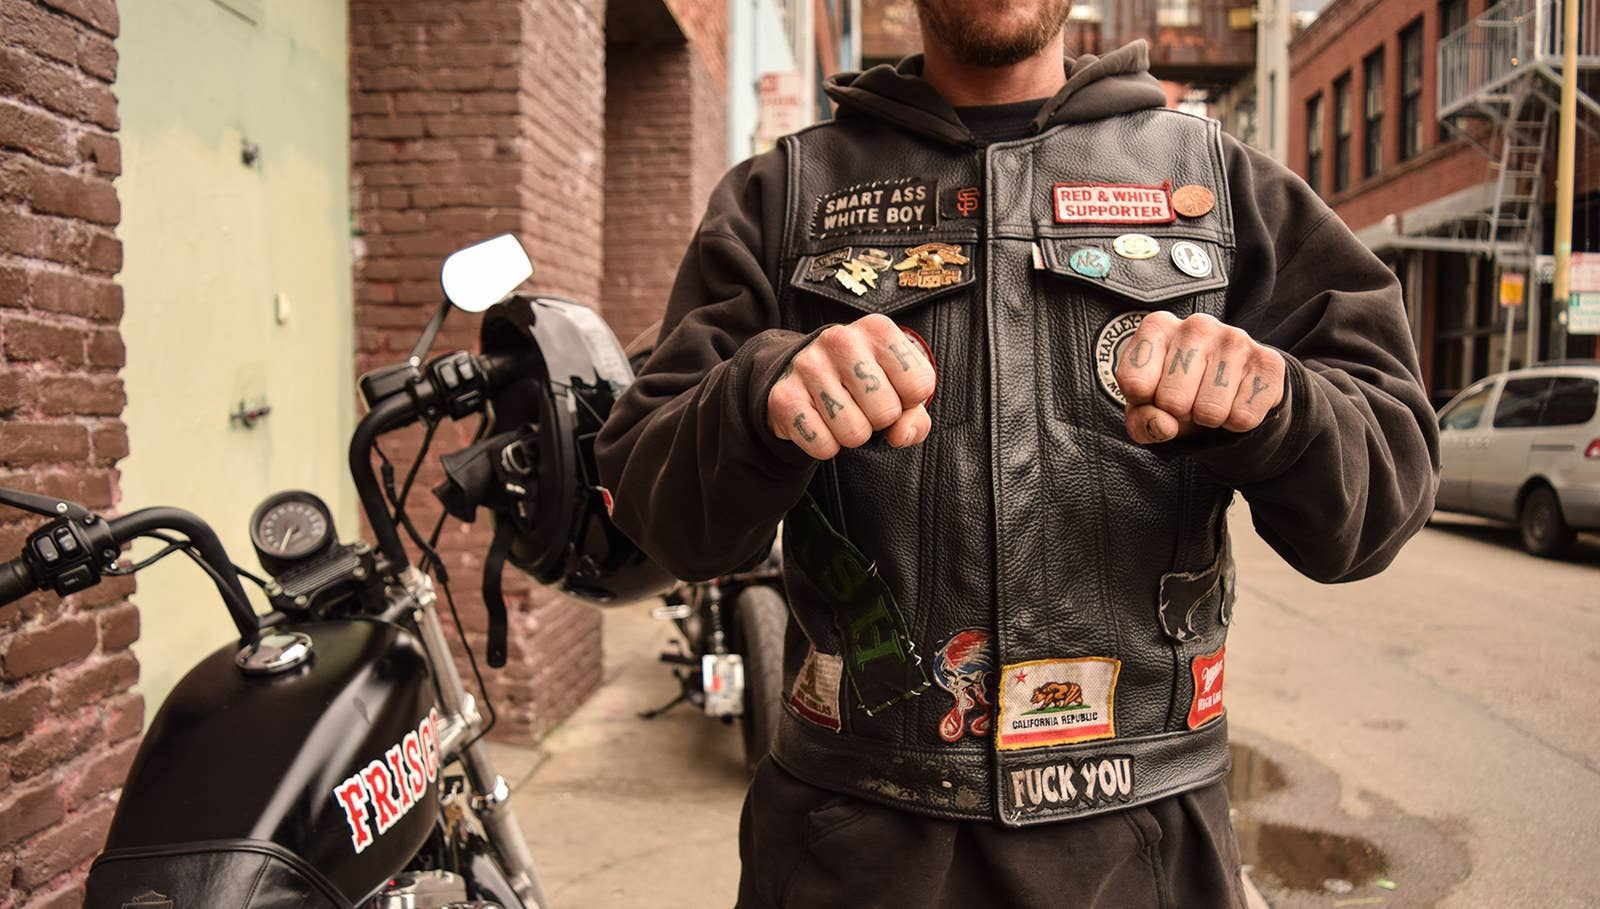 Want To Call It Frisco? Ask The Hells Angels